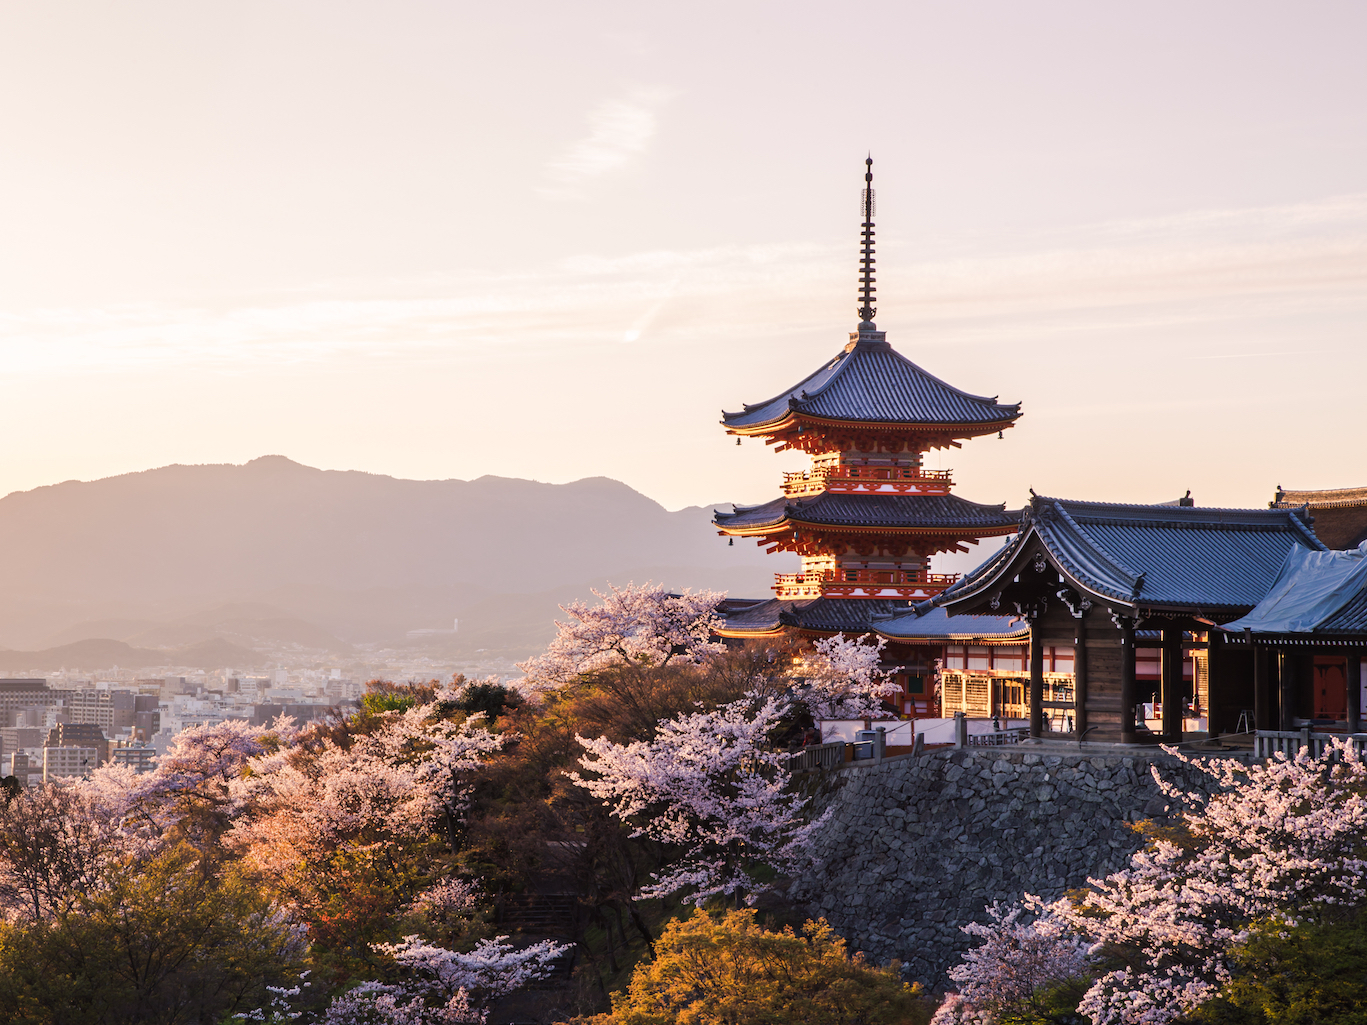 19-photos-that-show-why-kyoto-and-tokyo-were-voted-the-best-cities-in-the-world.png